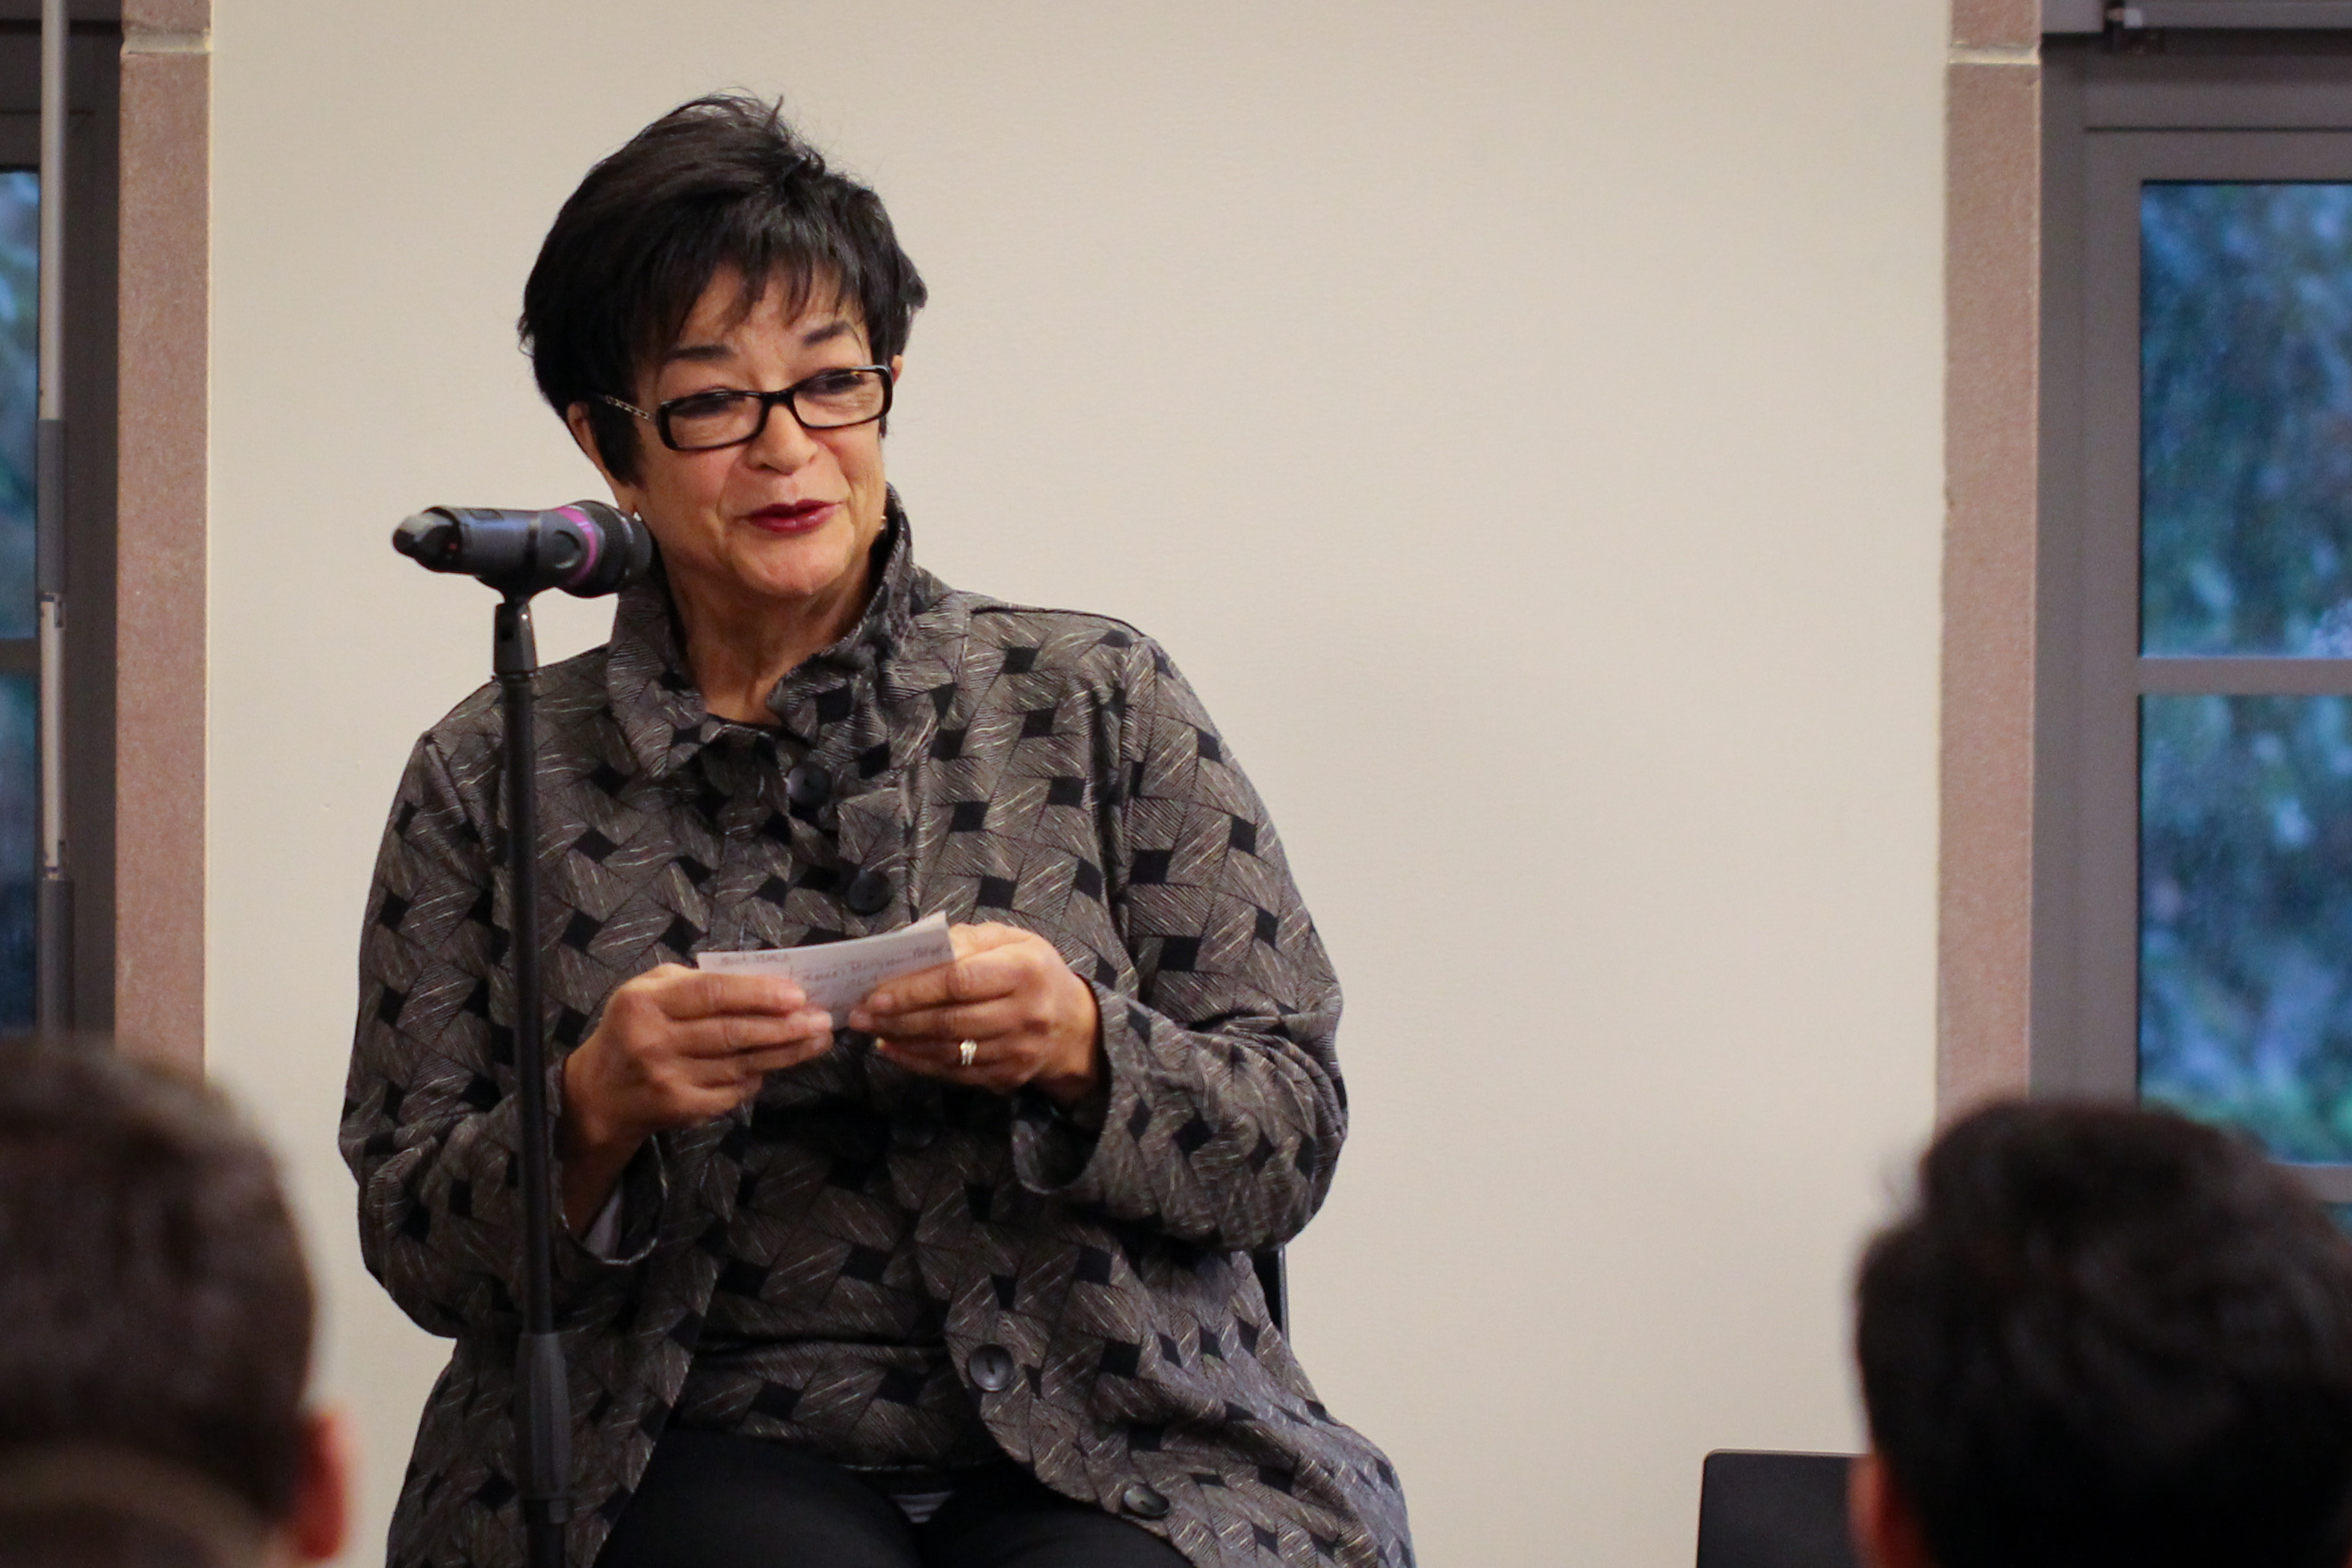 Anita Johnson Connell speaks during one of the 2018 Leadership Firesides.